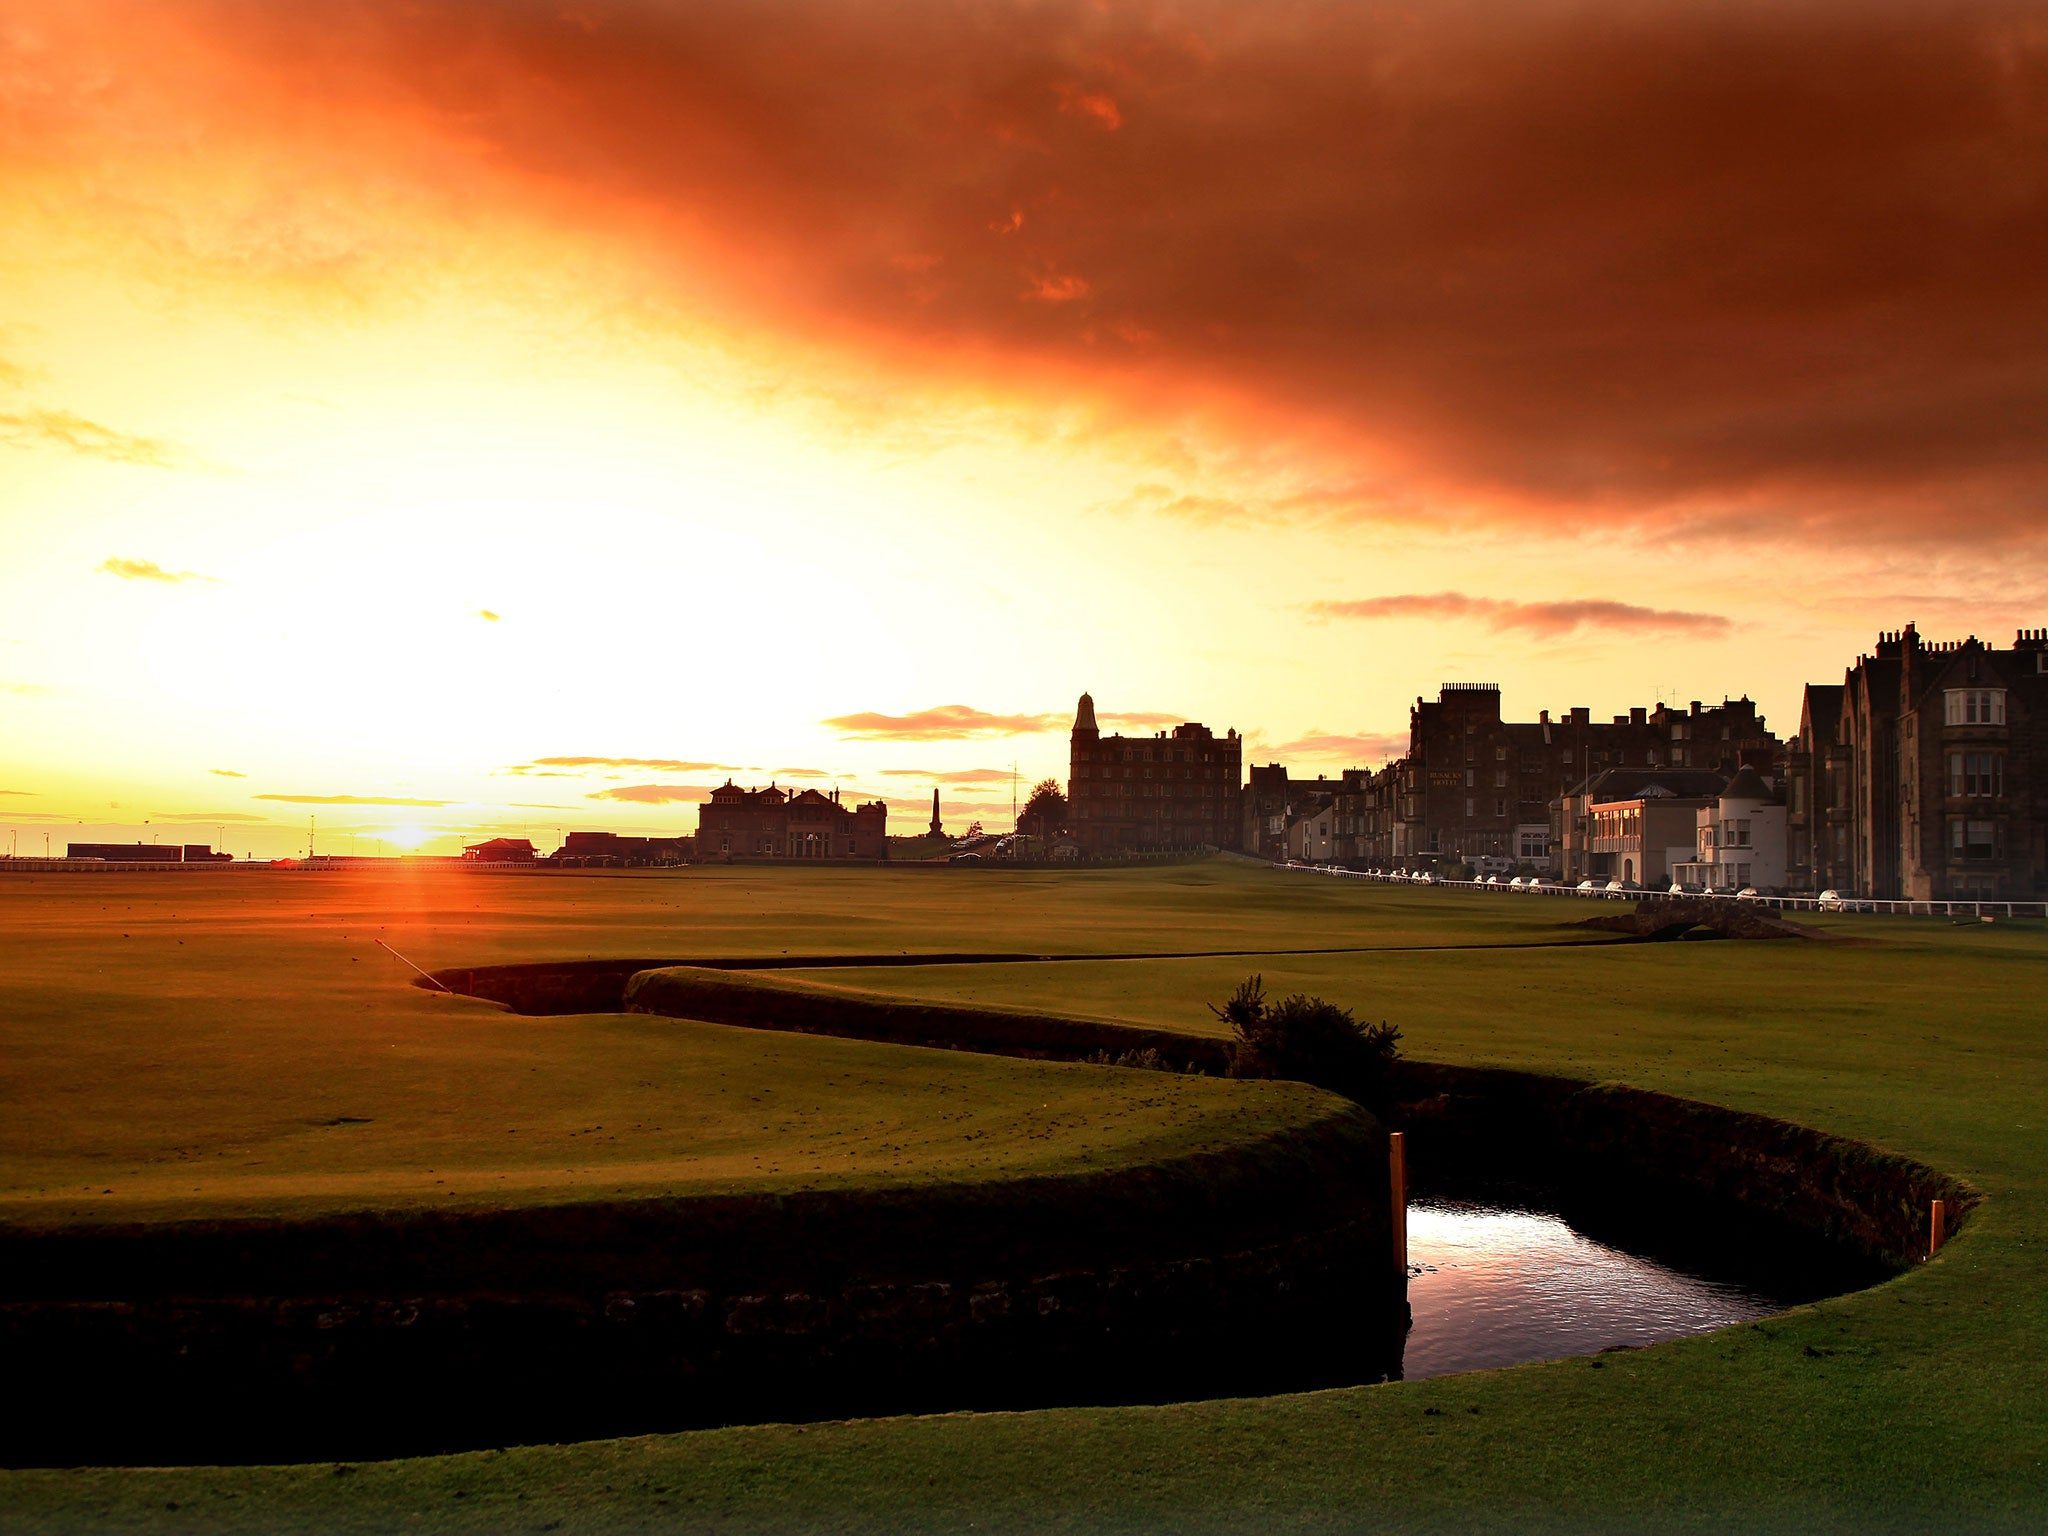 st andrews women The himalayas putting ground is open to the public and managed by the st andrews ladies putting club with both a 9 and 18 hole putting course, we welcome all standards of putters, from age 3 – 93 (and older.